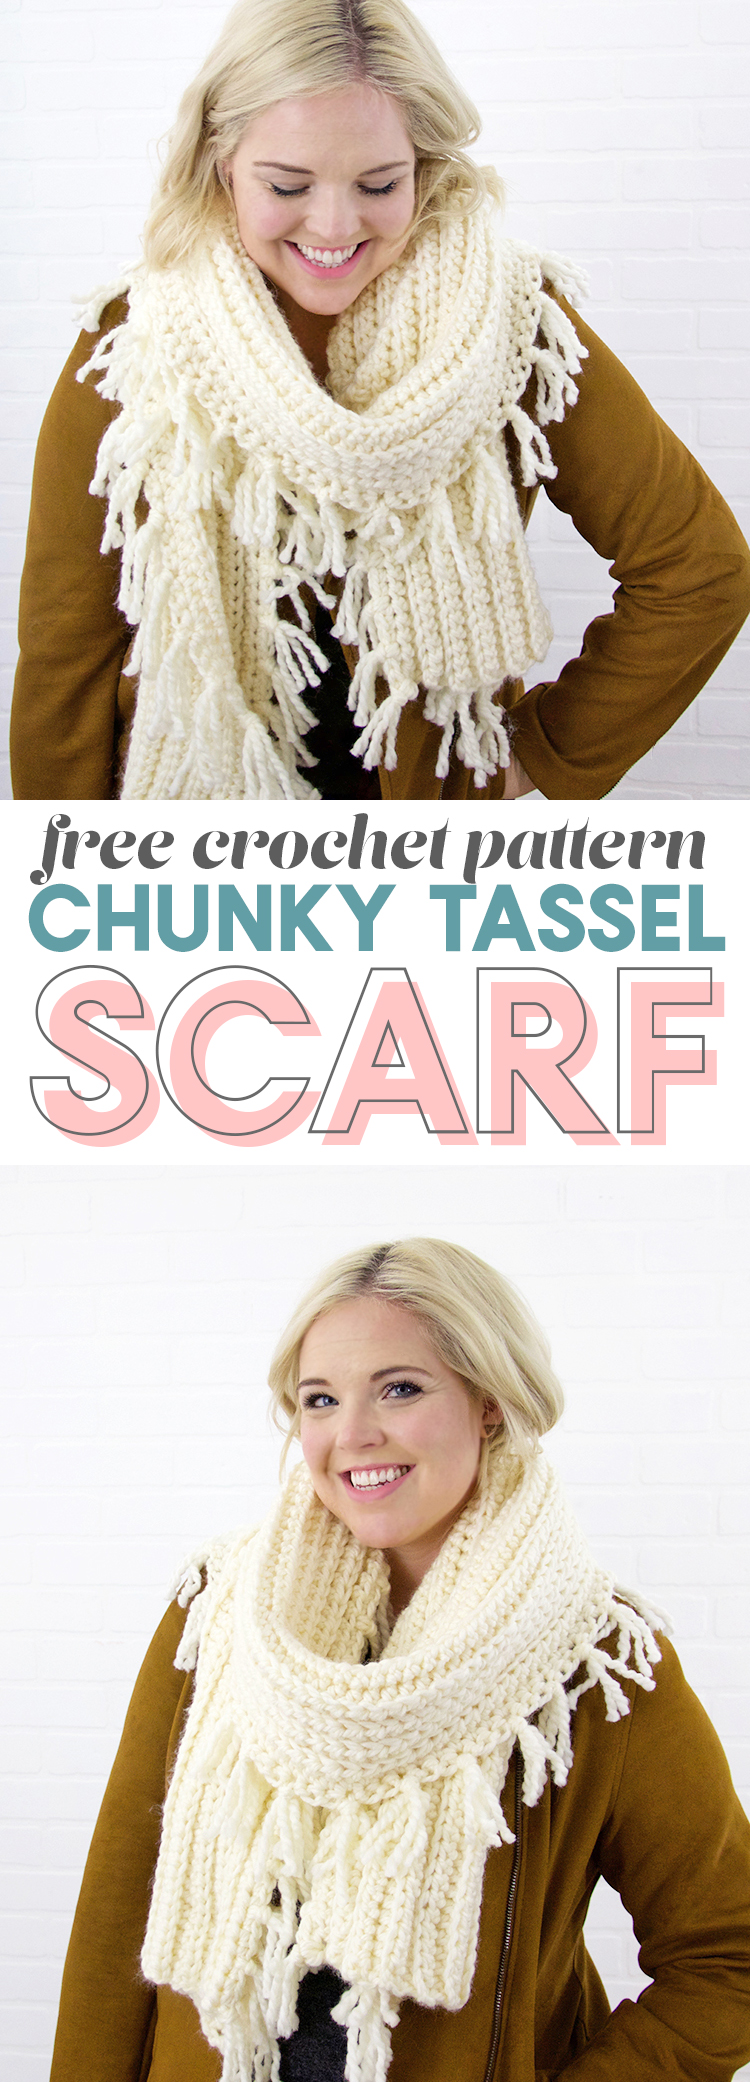 free crochet scarf pattern - love the look of this chunky tasseled scarf